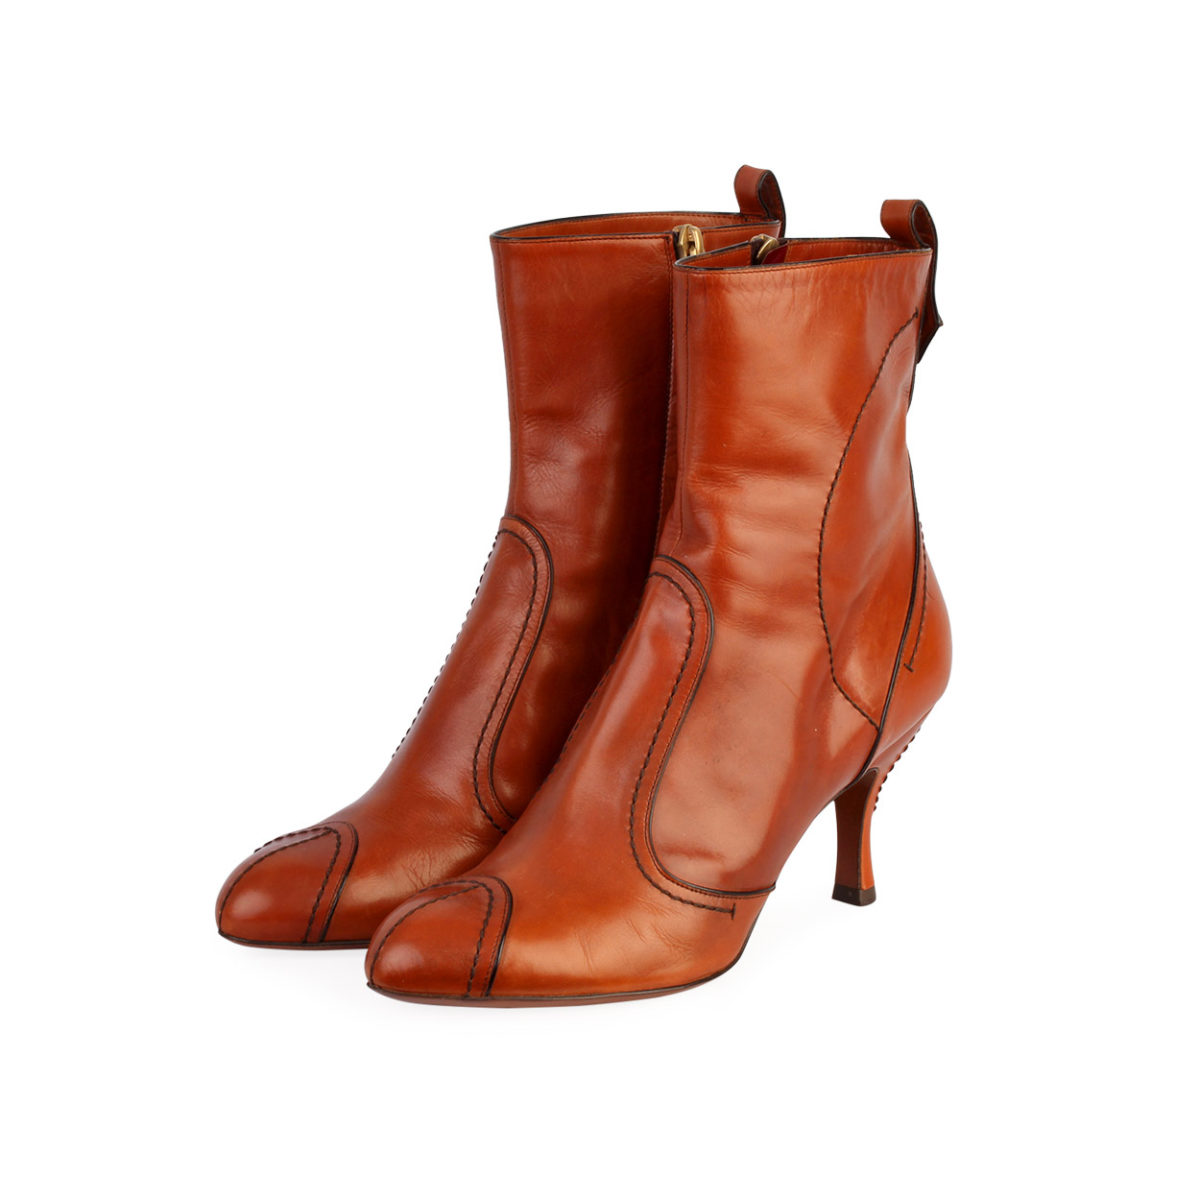 a477c6c68fb657 LOUIS VUITTON Leather Ankle Boots Brown - S: 38 (5) | Luxity